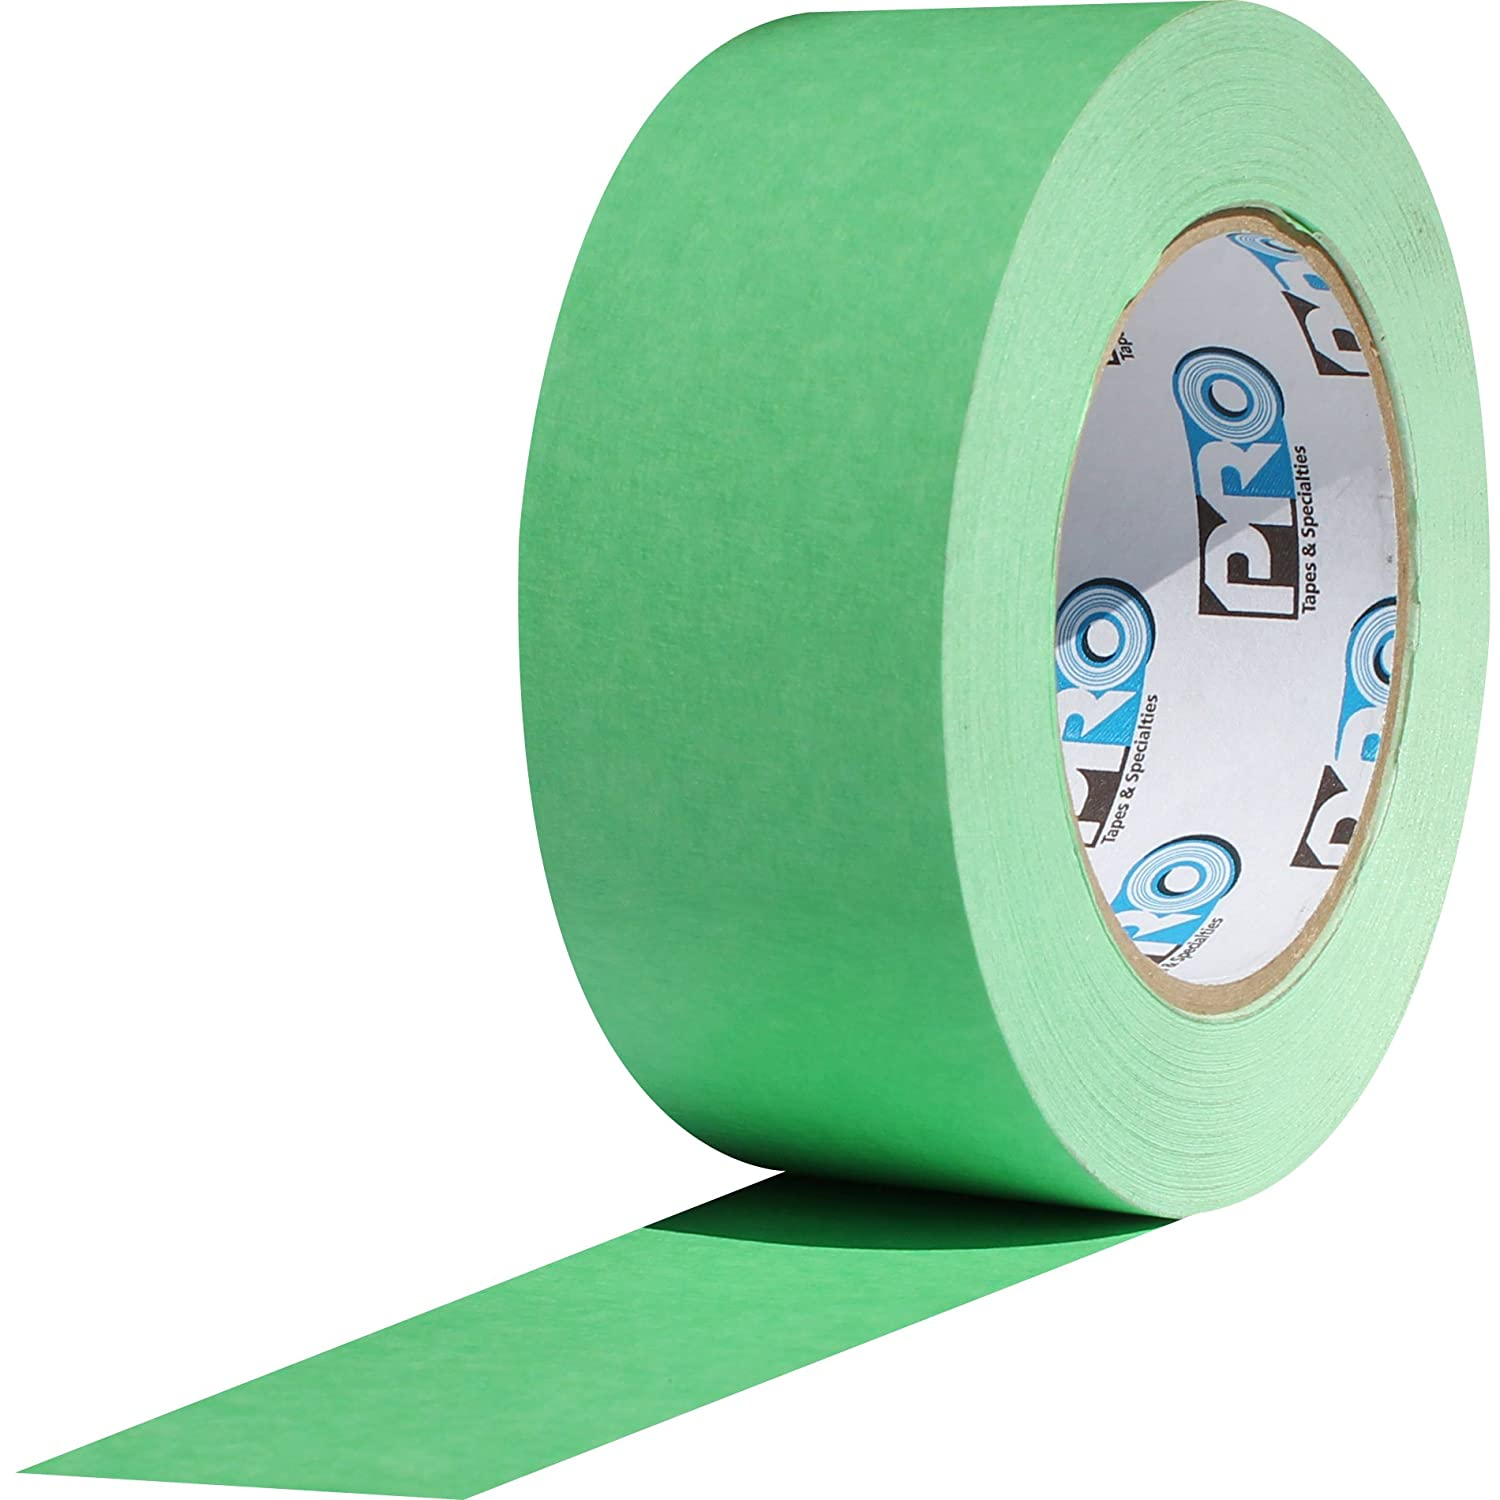 "ProTapes Pro Scenic 708 Crepe Paper 8 Day Easy Release Painters Masking Tape, 60 yds Length x 3/4"" Width, Green (Pack of 1)"